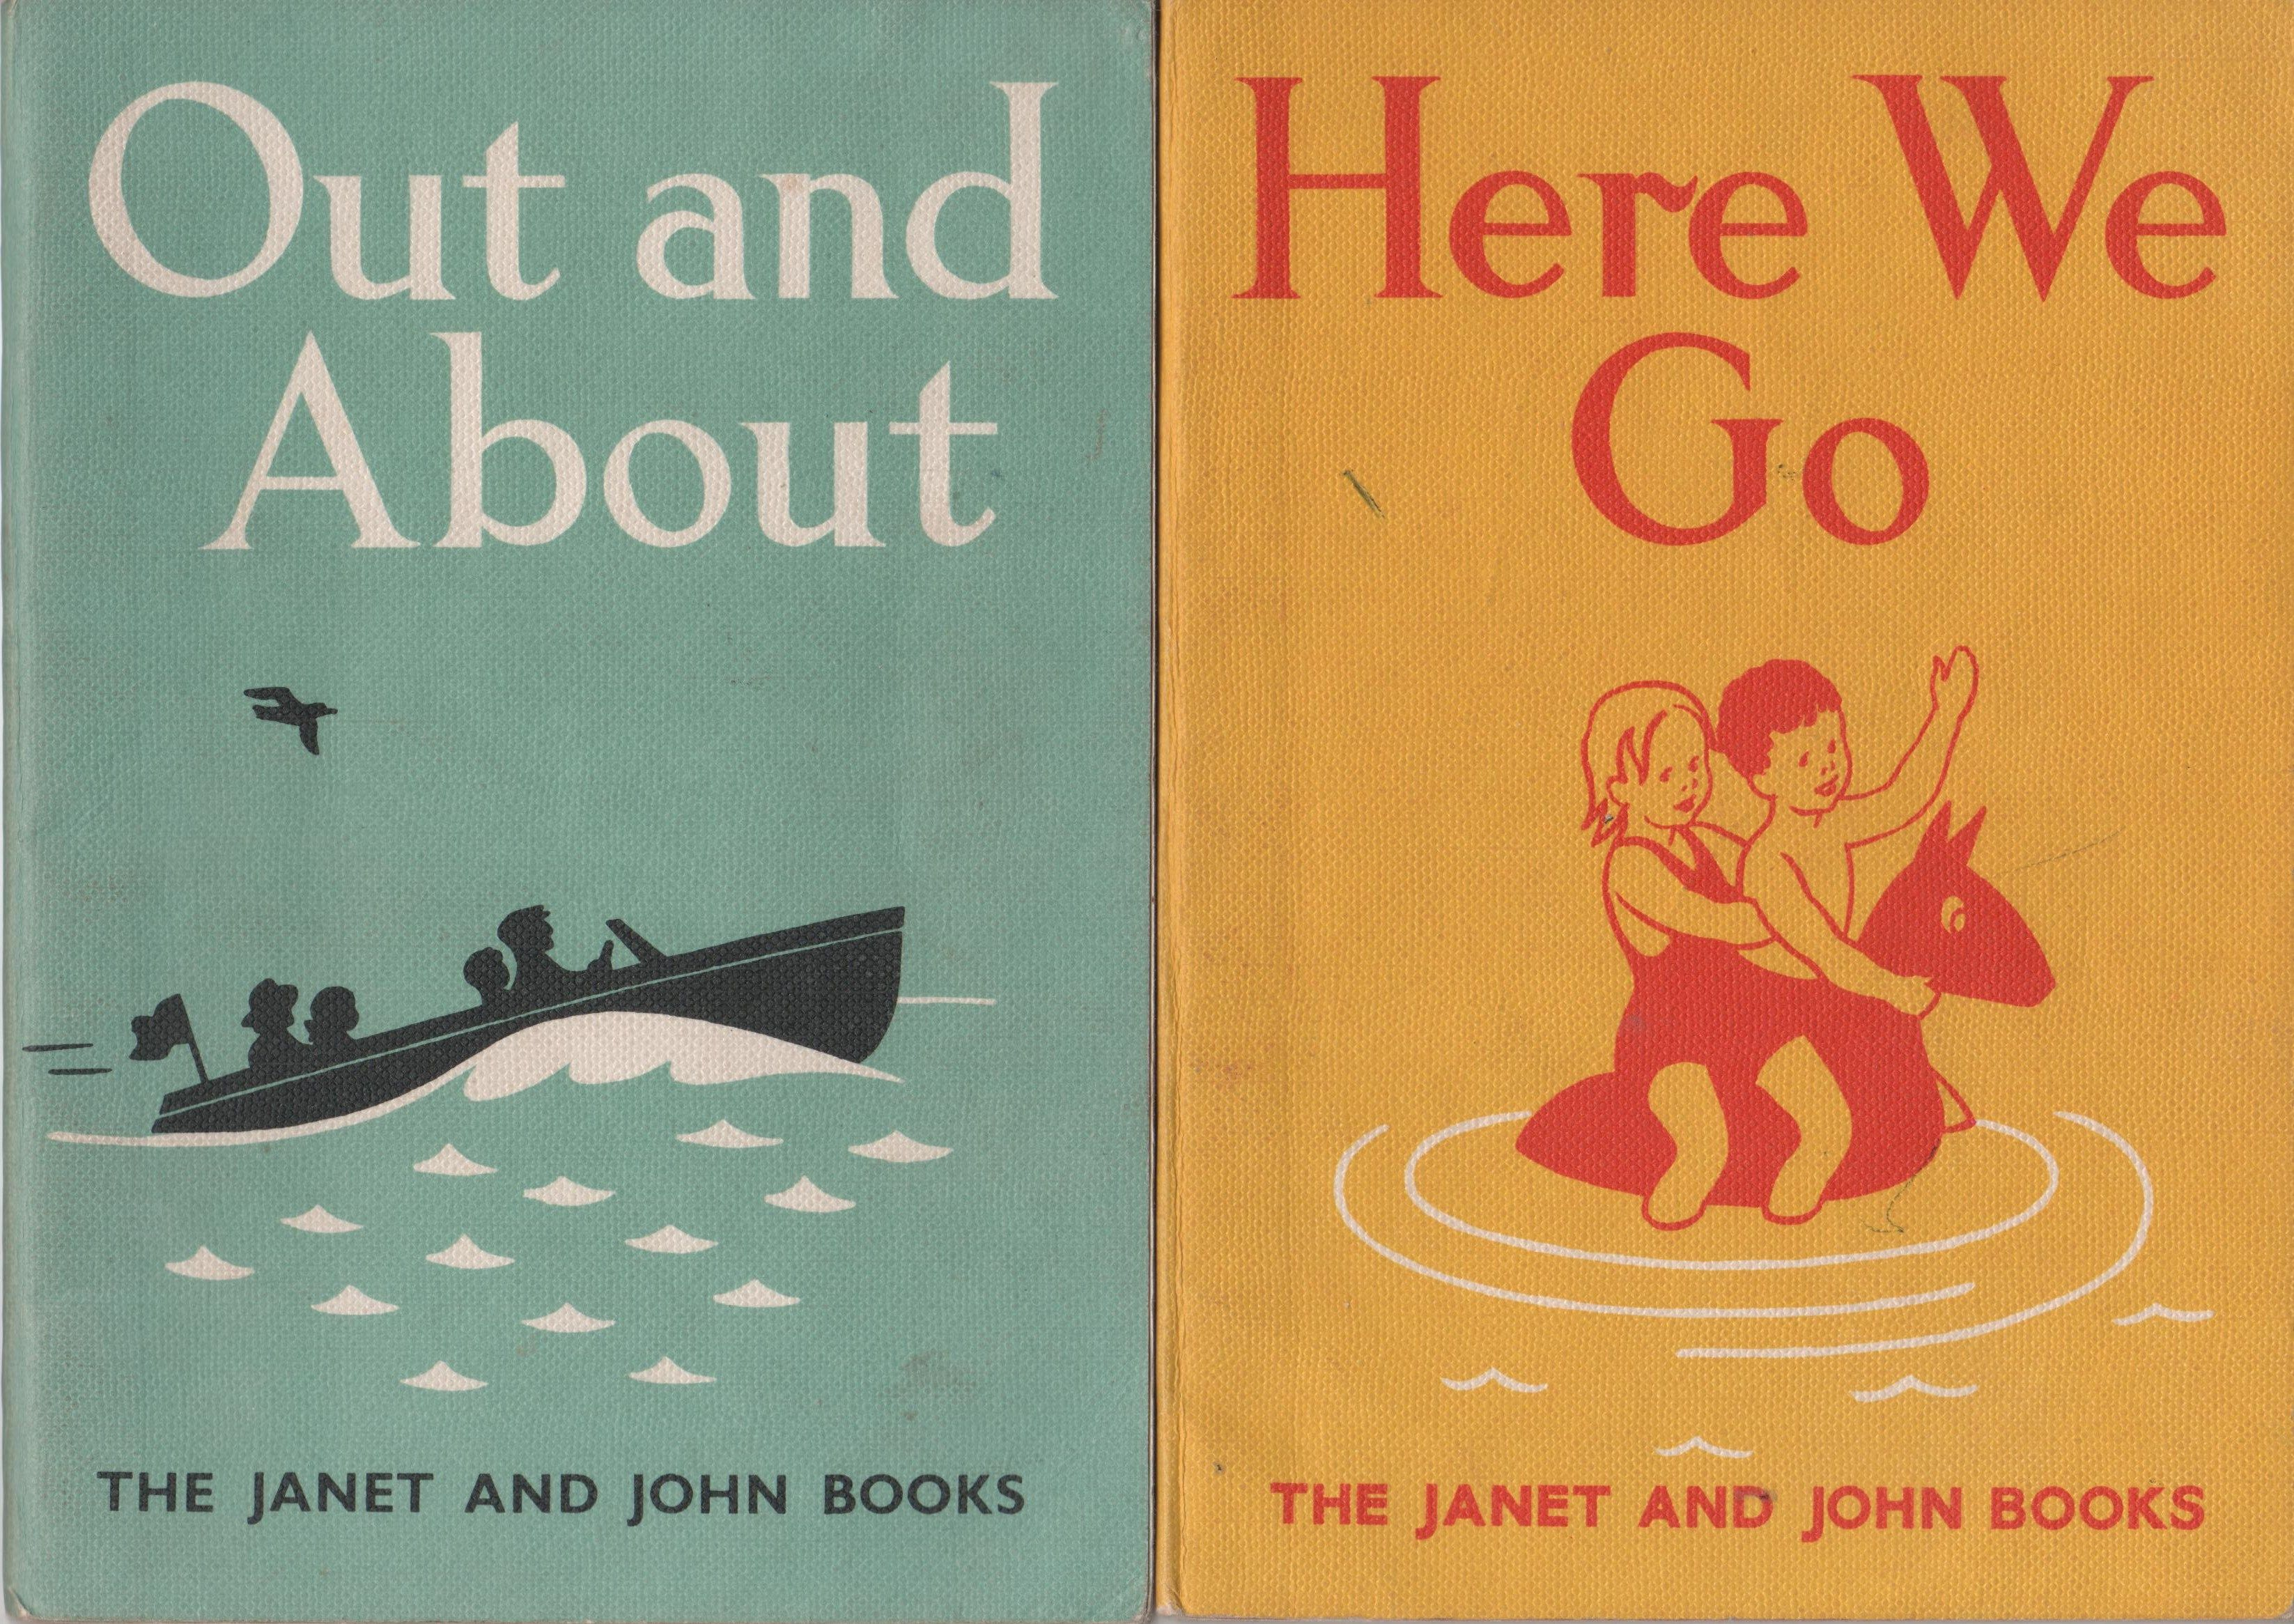 The books we used to learn to read Janet and John